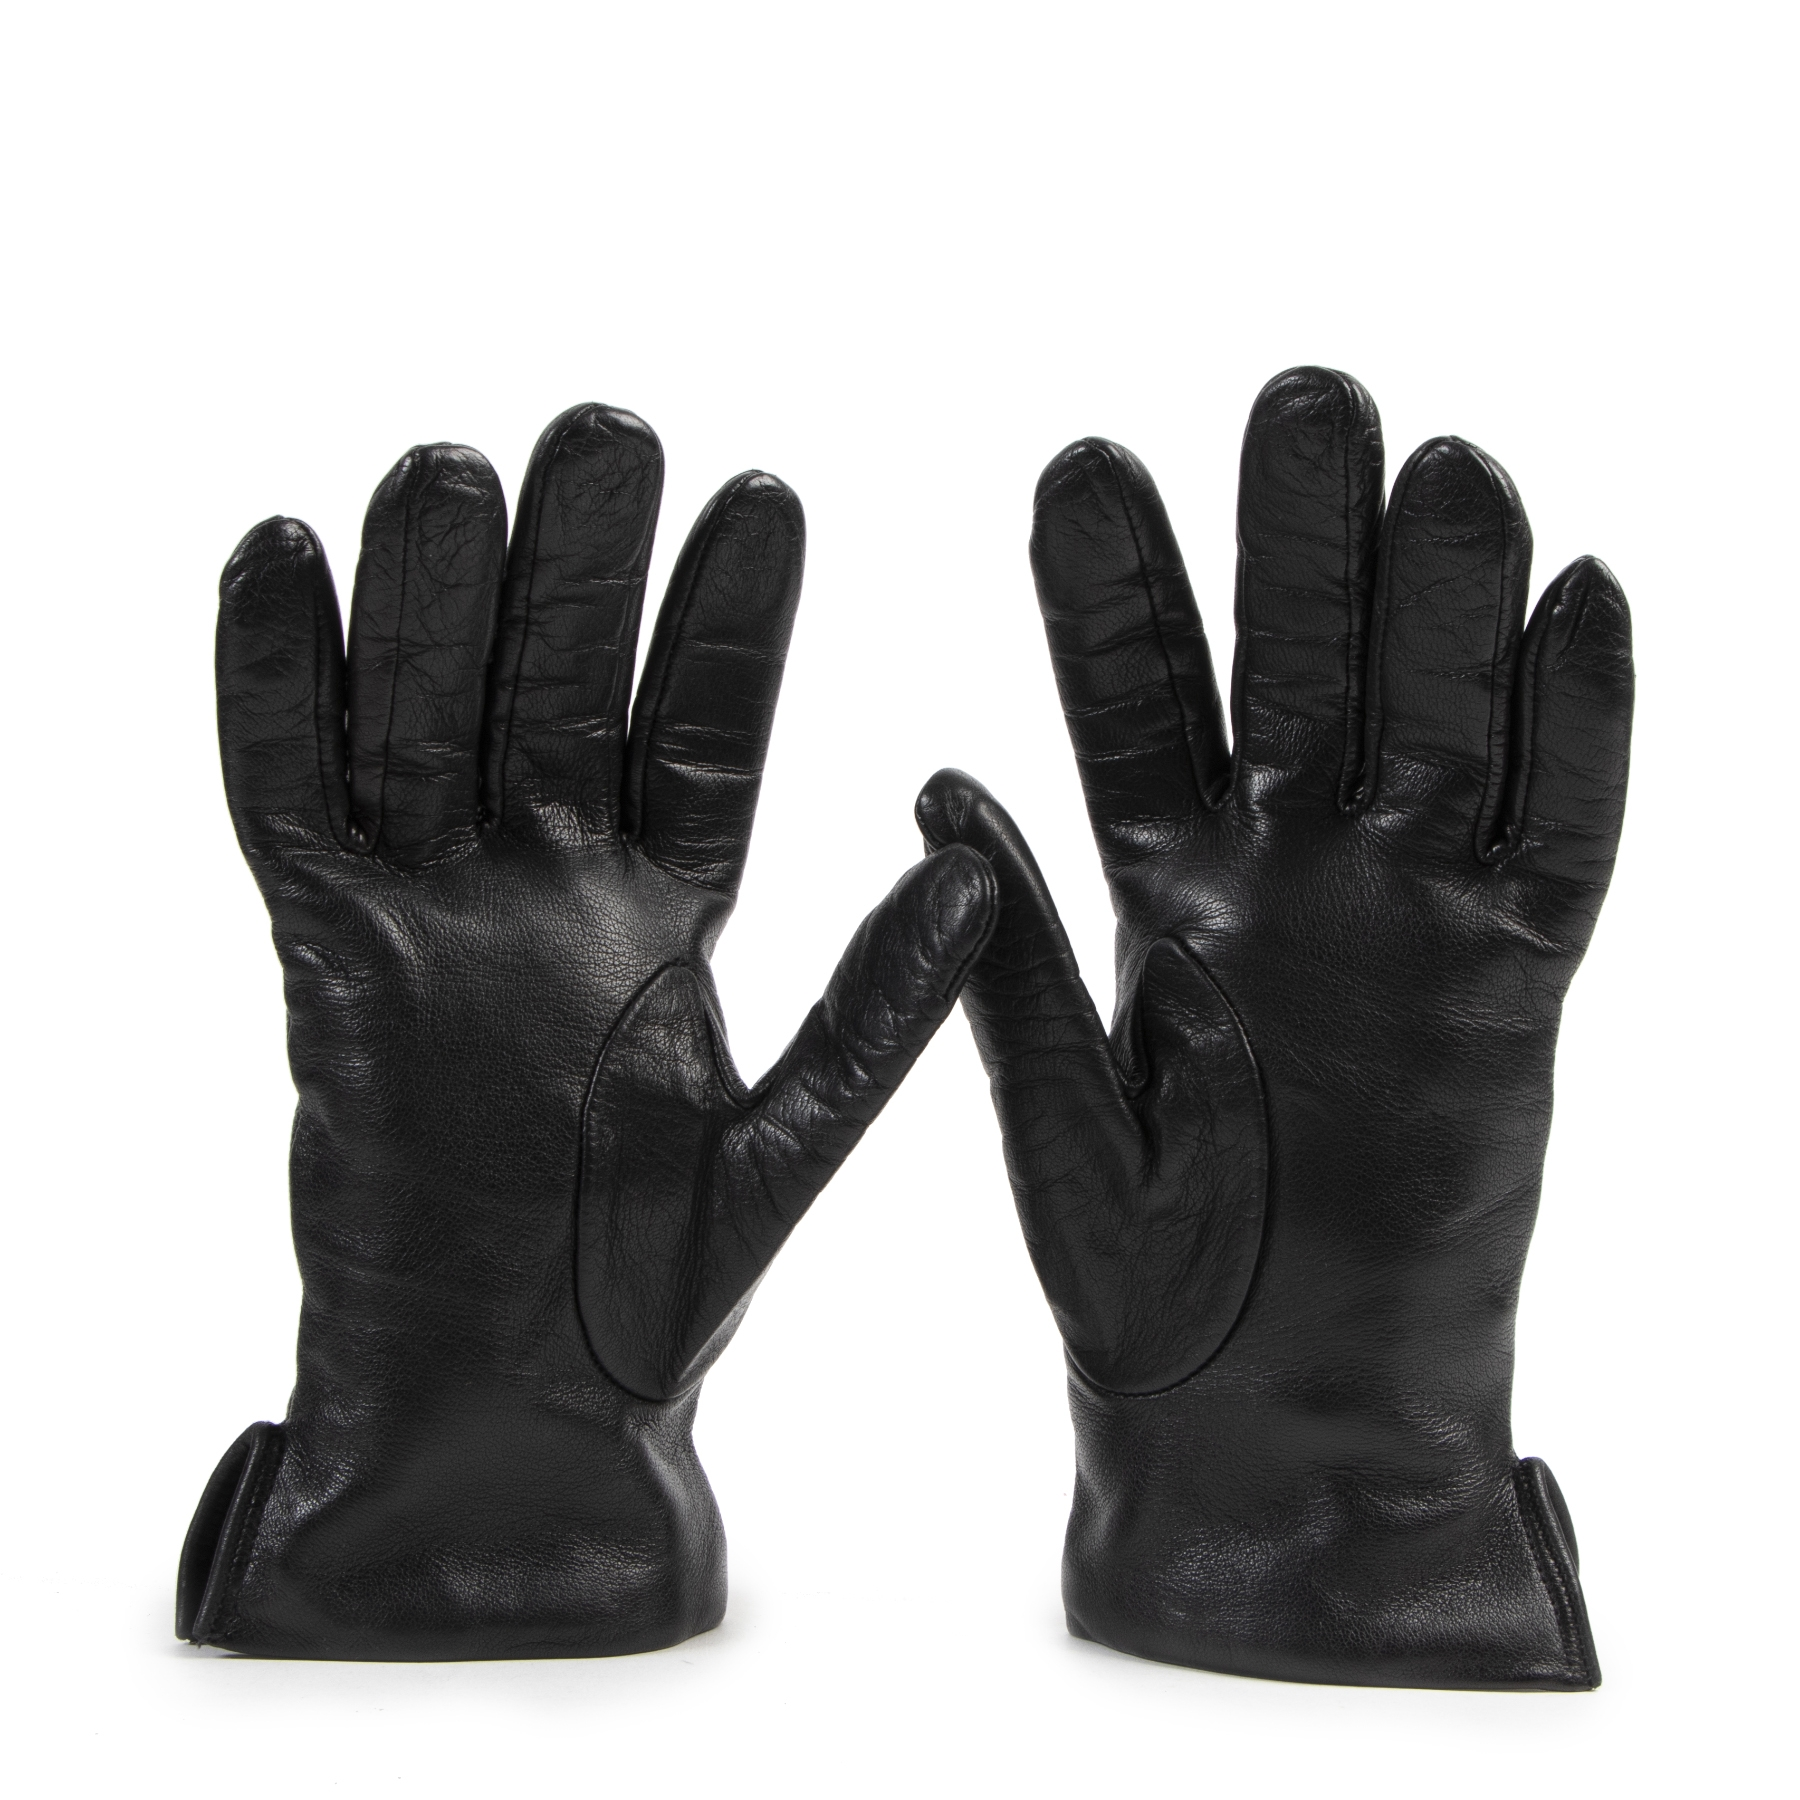 Authentic secondhand Fratelli Rosseti Black Leather Gloves designer accessories fashion luxury vintage webshop safe secure online shopping high end brands